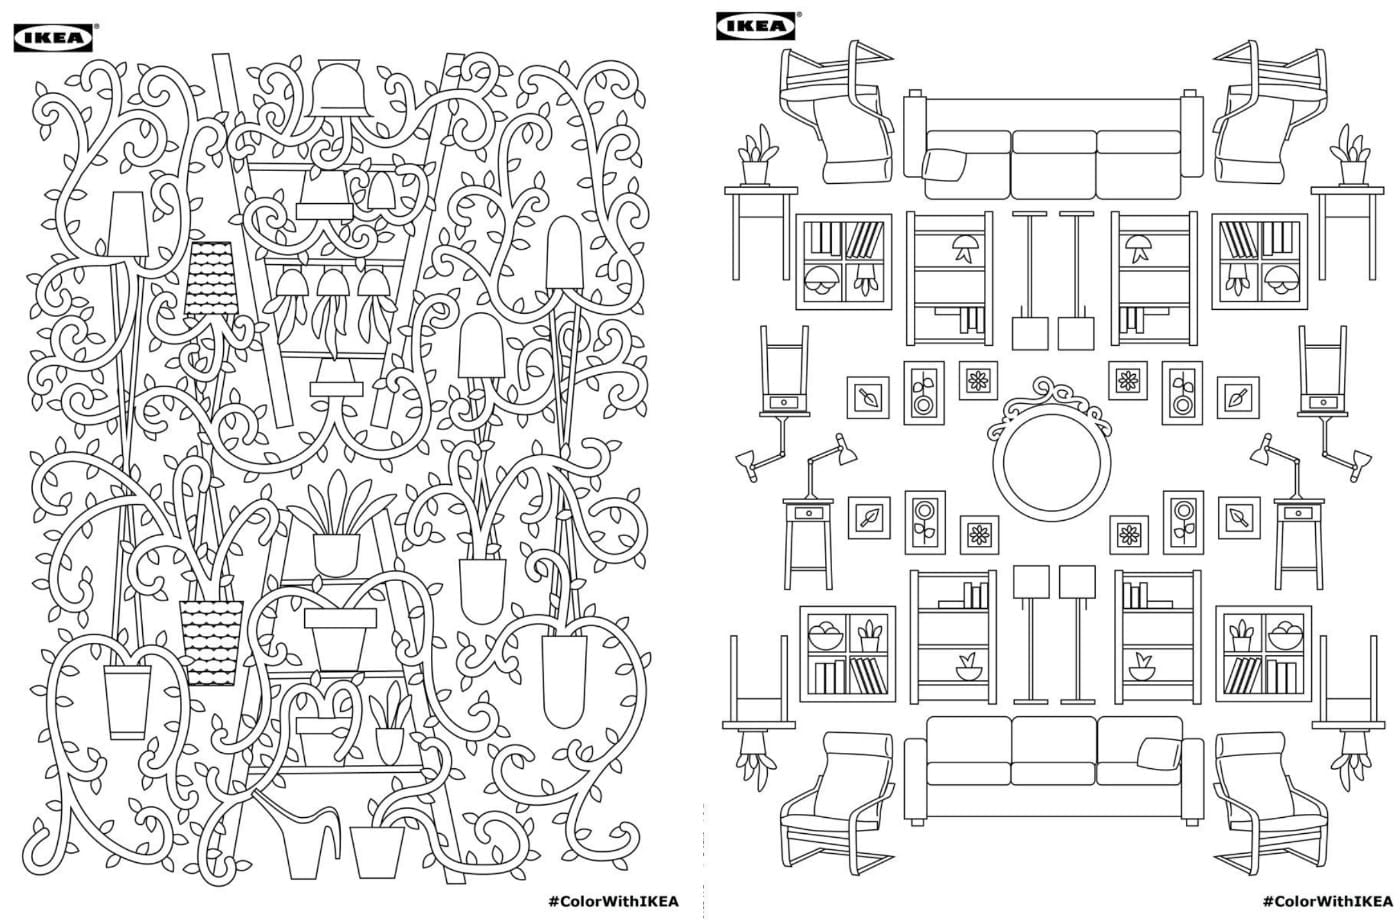 Download Ikea's Adult Coloring Book For Free!